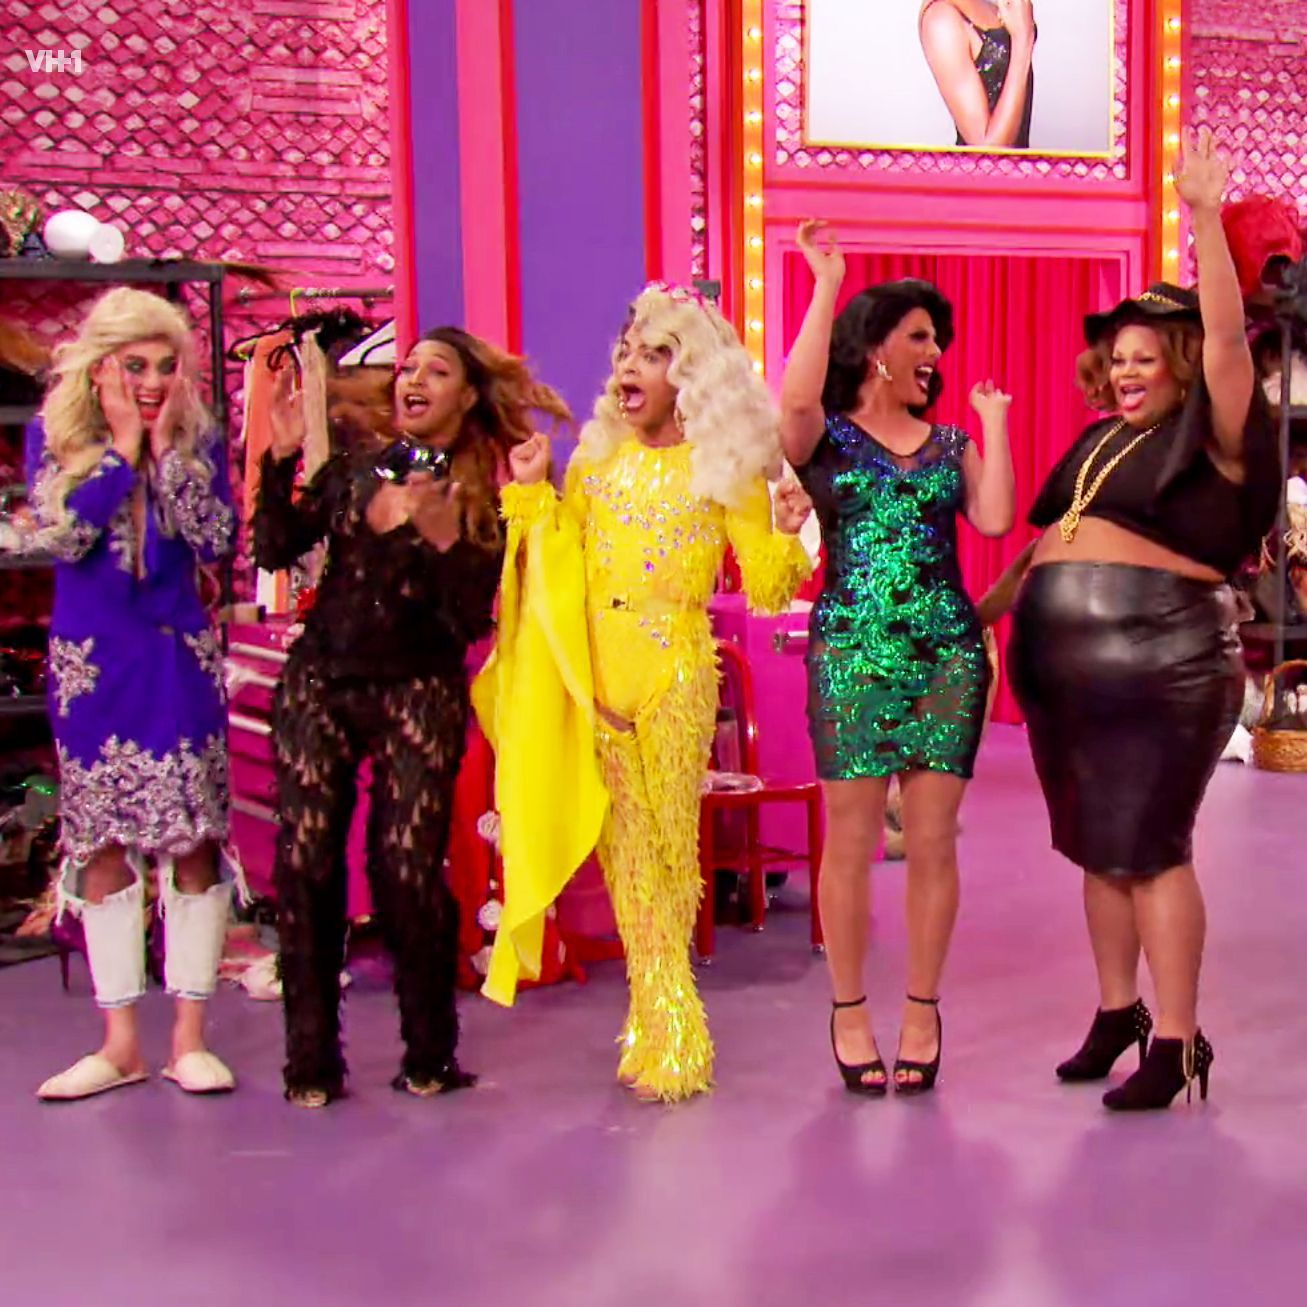 Pin On Rpdr Snatch Game